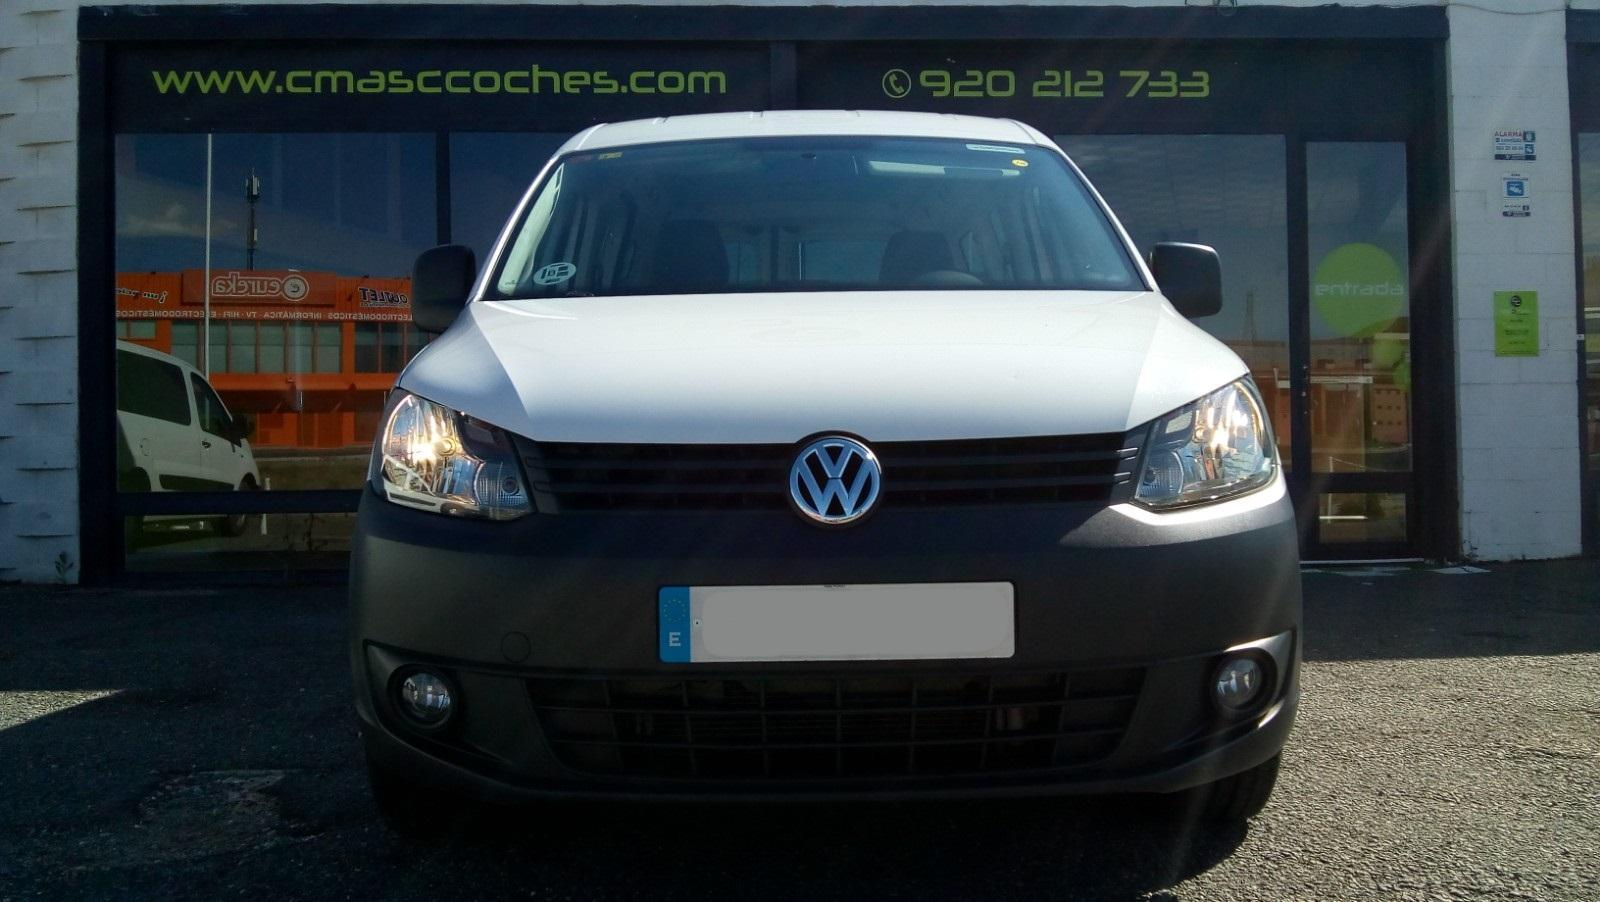 cmasc coches VOLKSWAGEN CADDY 2.0 TDI 4MOTION 5 PLAZAS